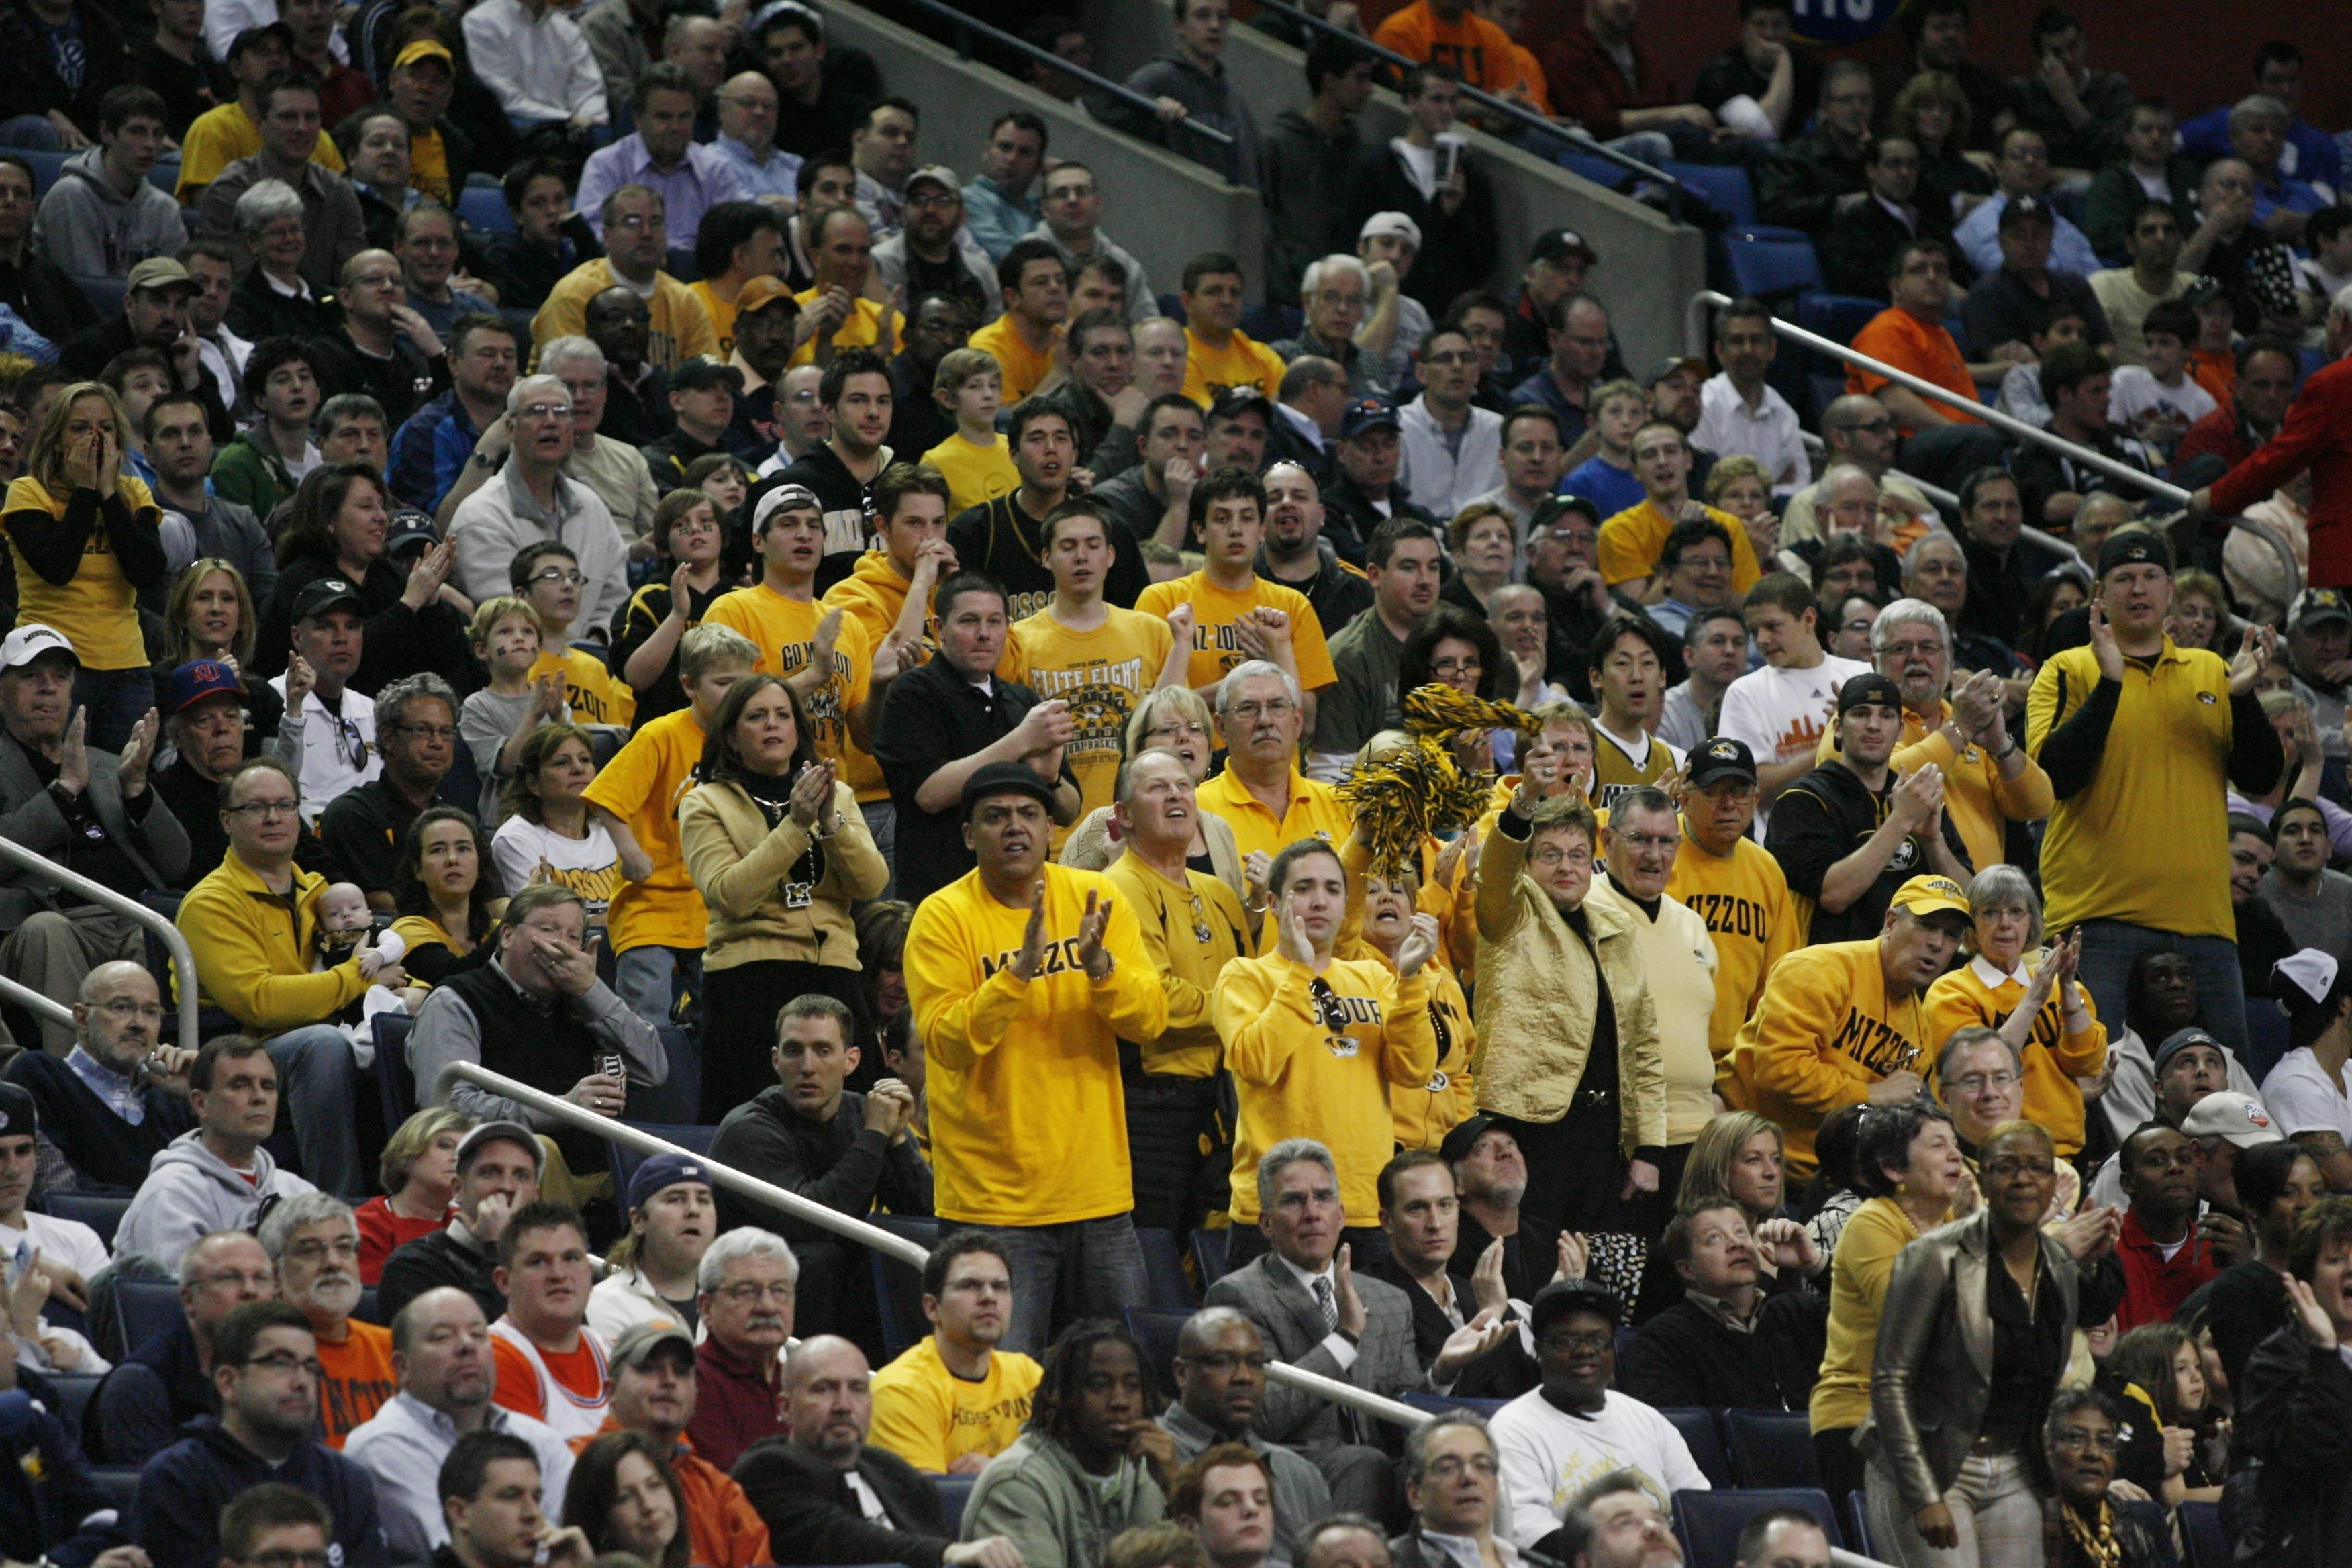 Missouri fans cheer on their team during the NCAA tournament in Buffalo on March 19, 2010.